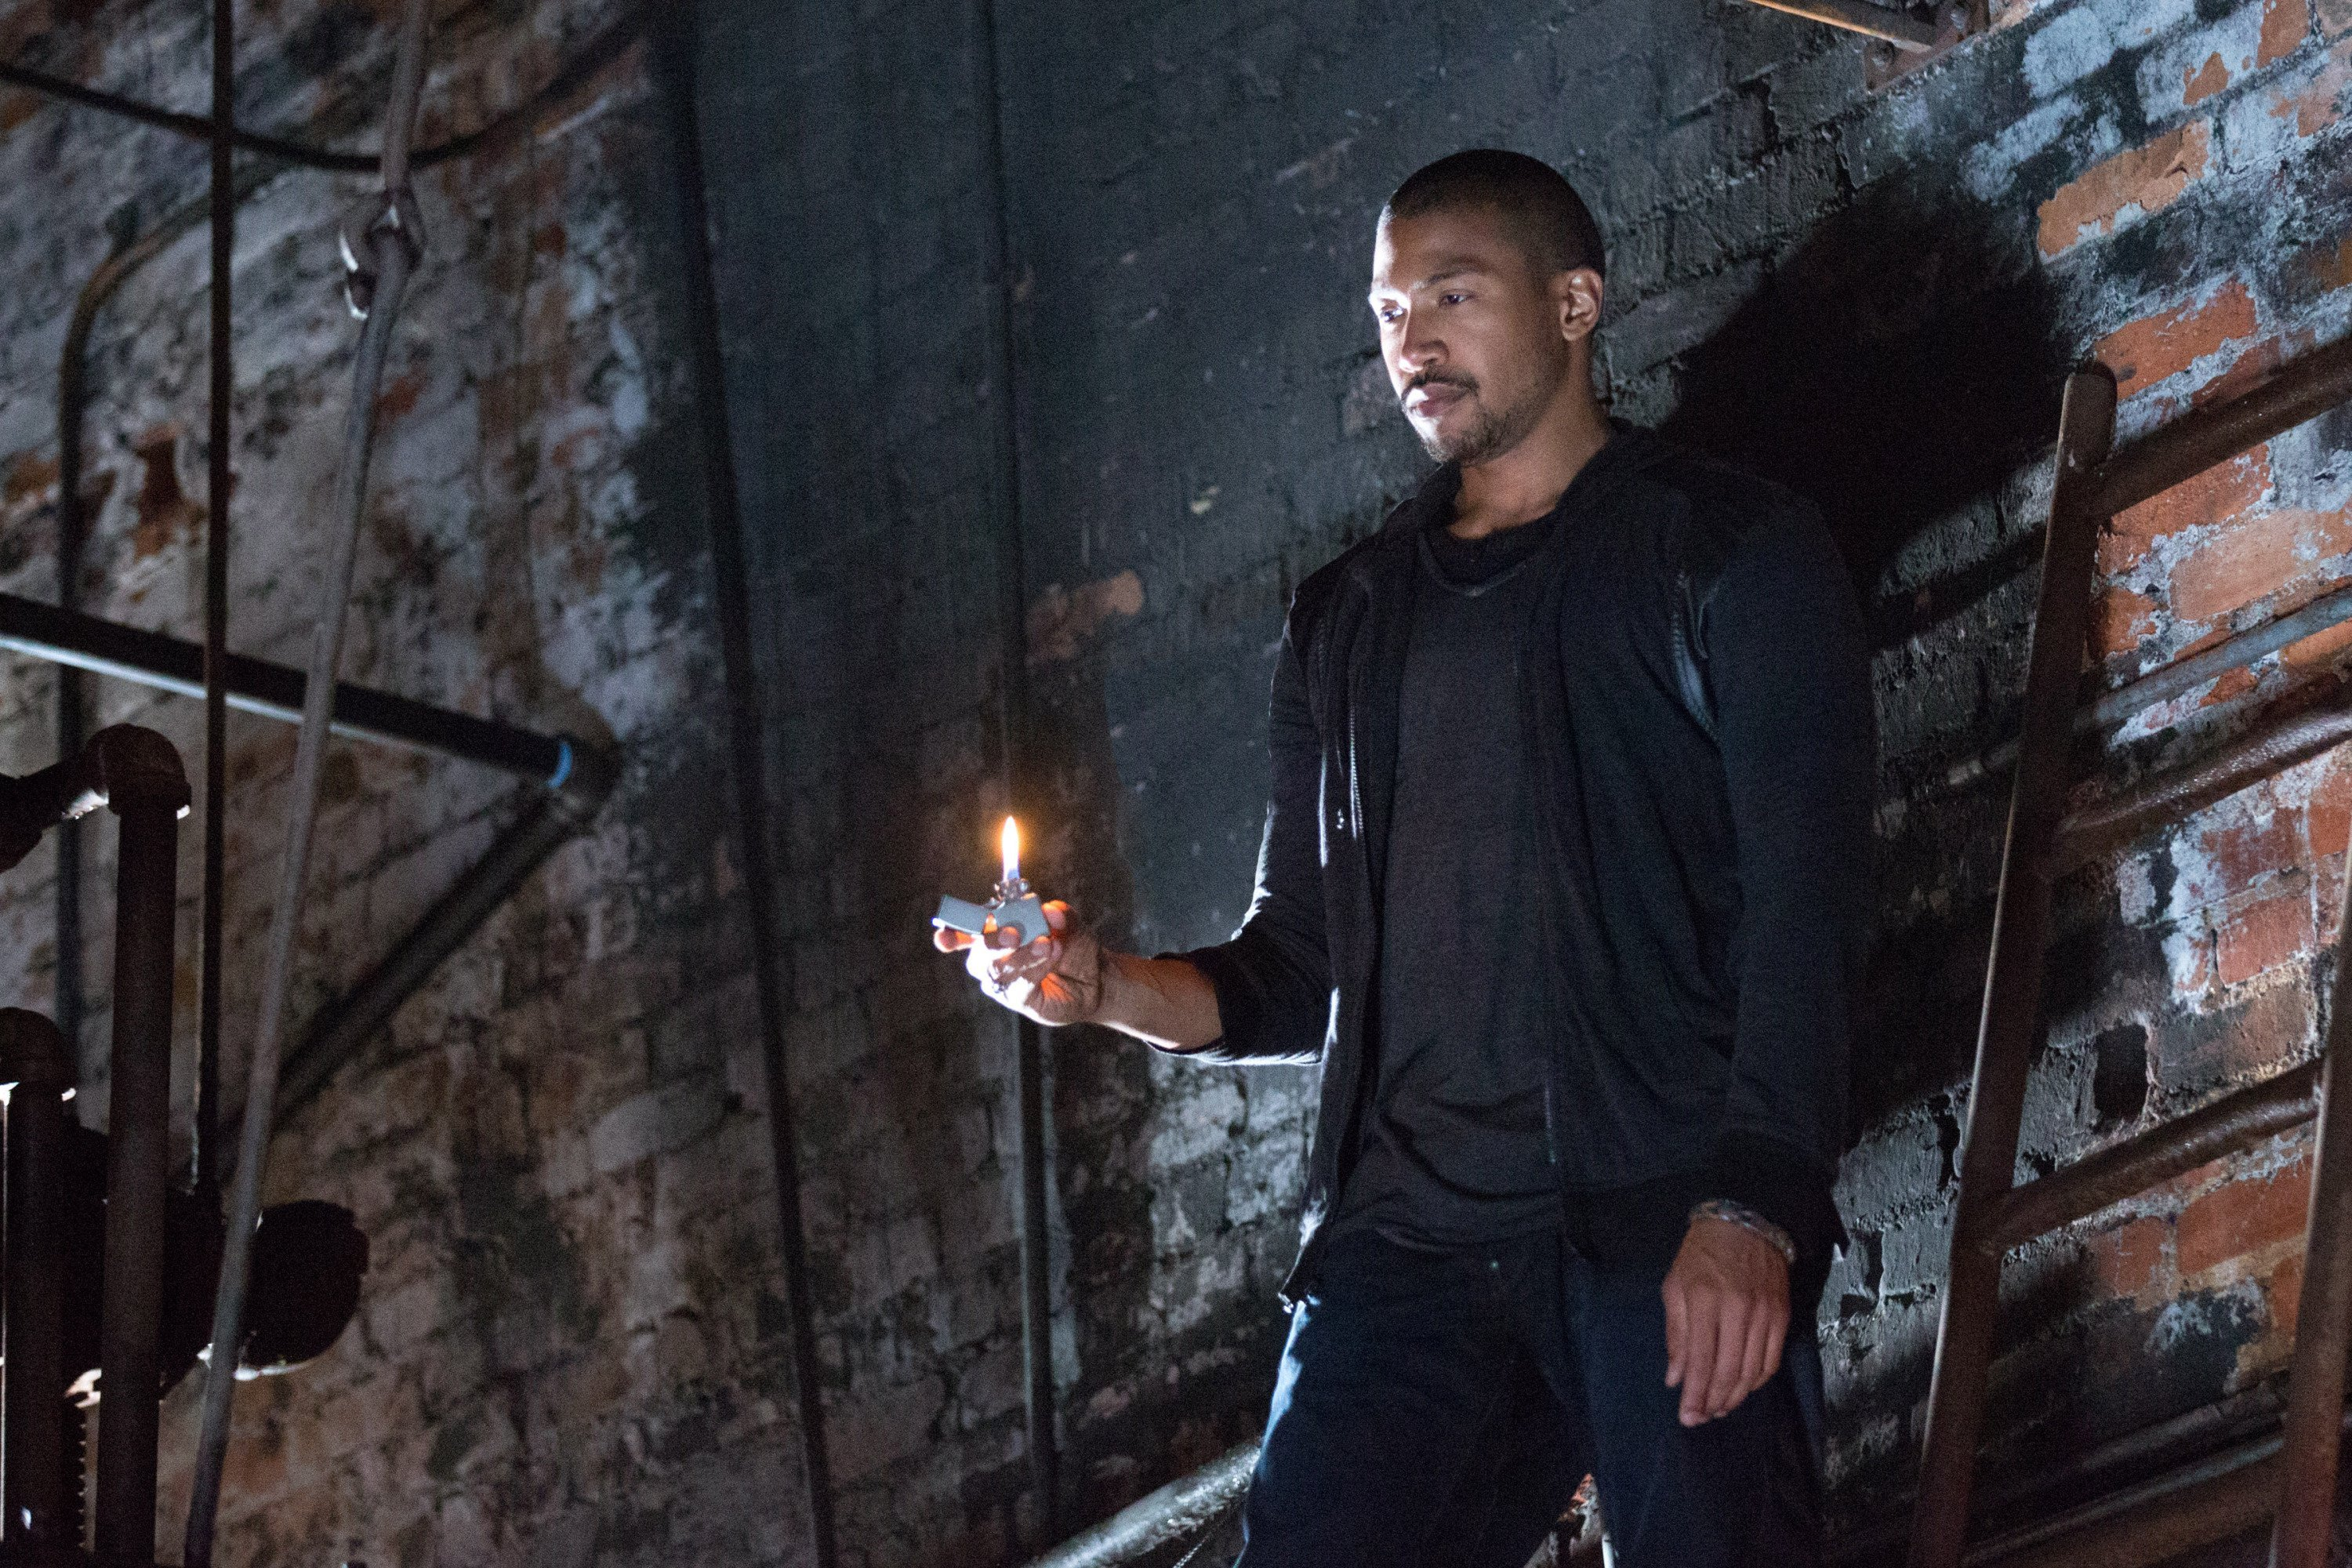 File:The Originals - Episode 2.01 - Rebirth(i).jpg